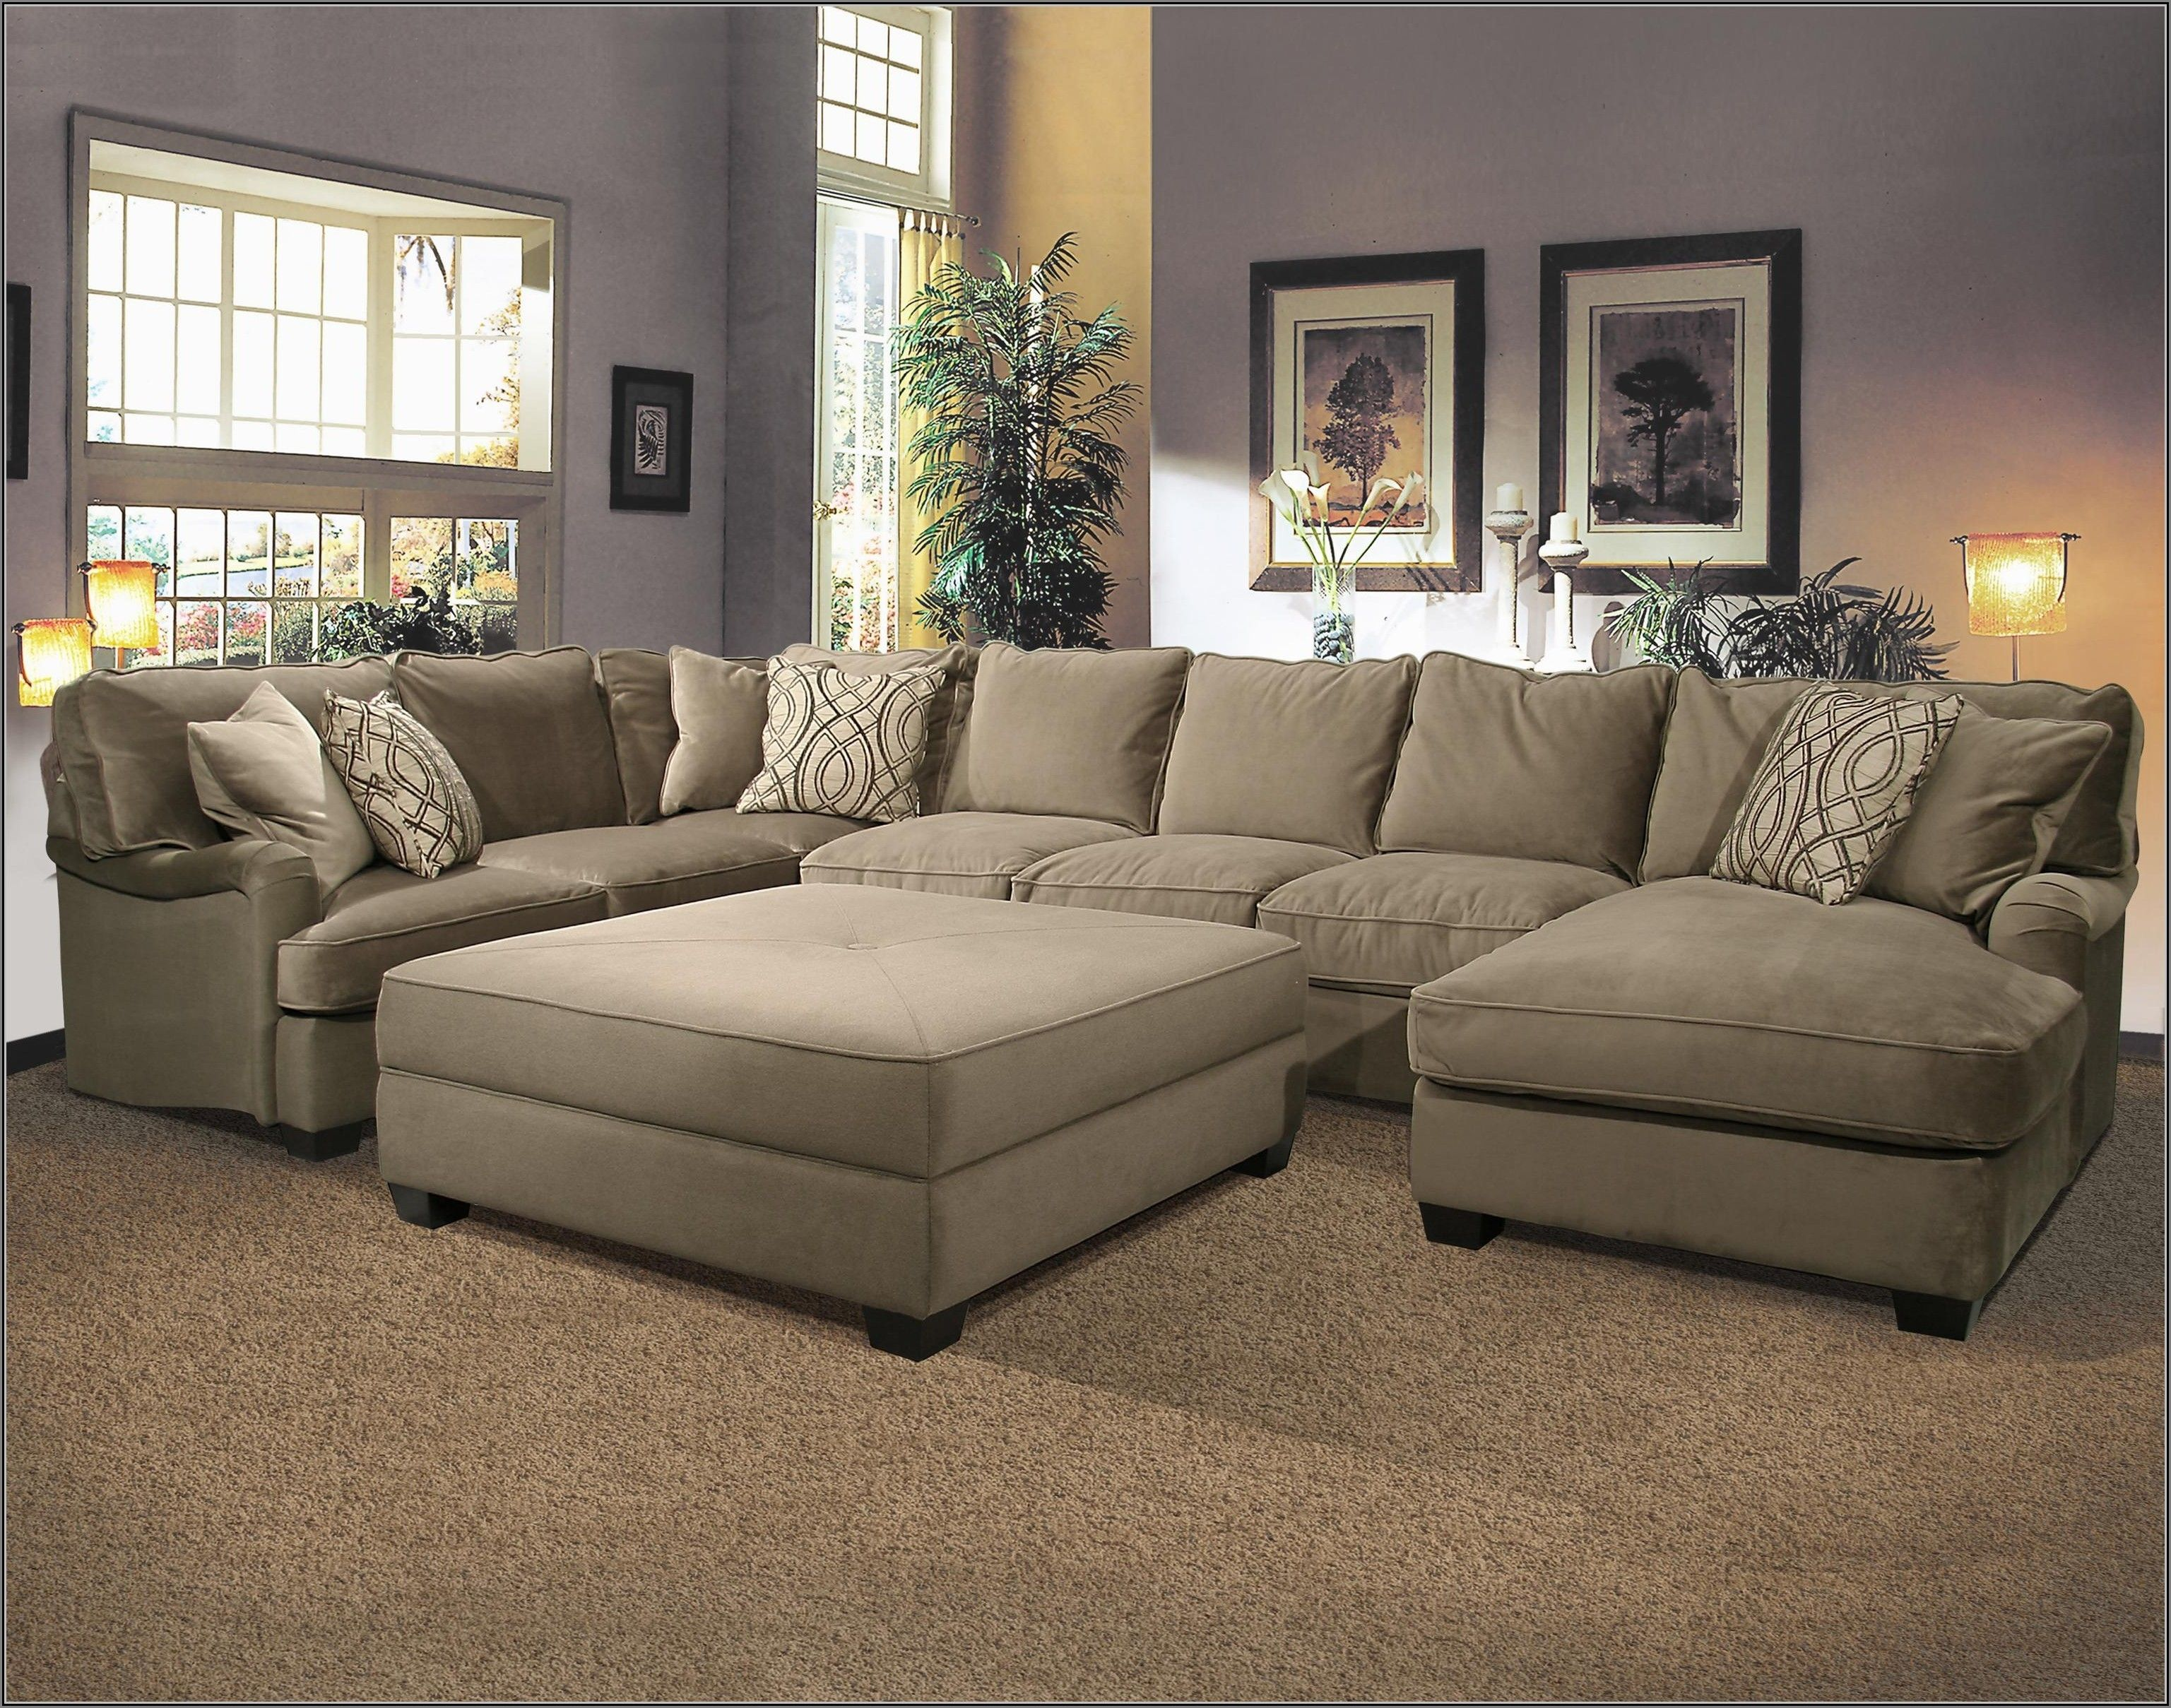 10 Collection Of Big U Shaped Sectionals Sofa Ideas Large